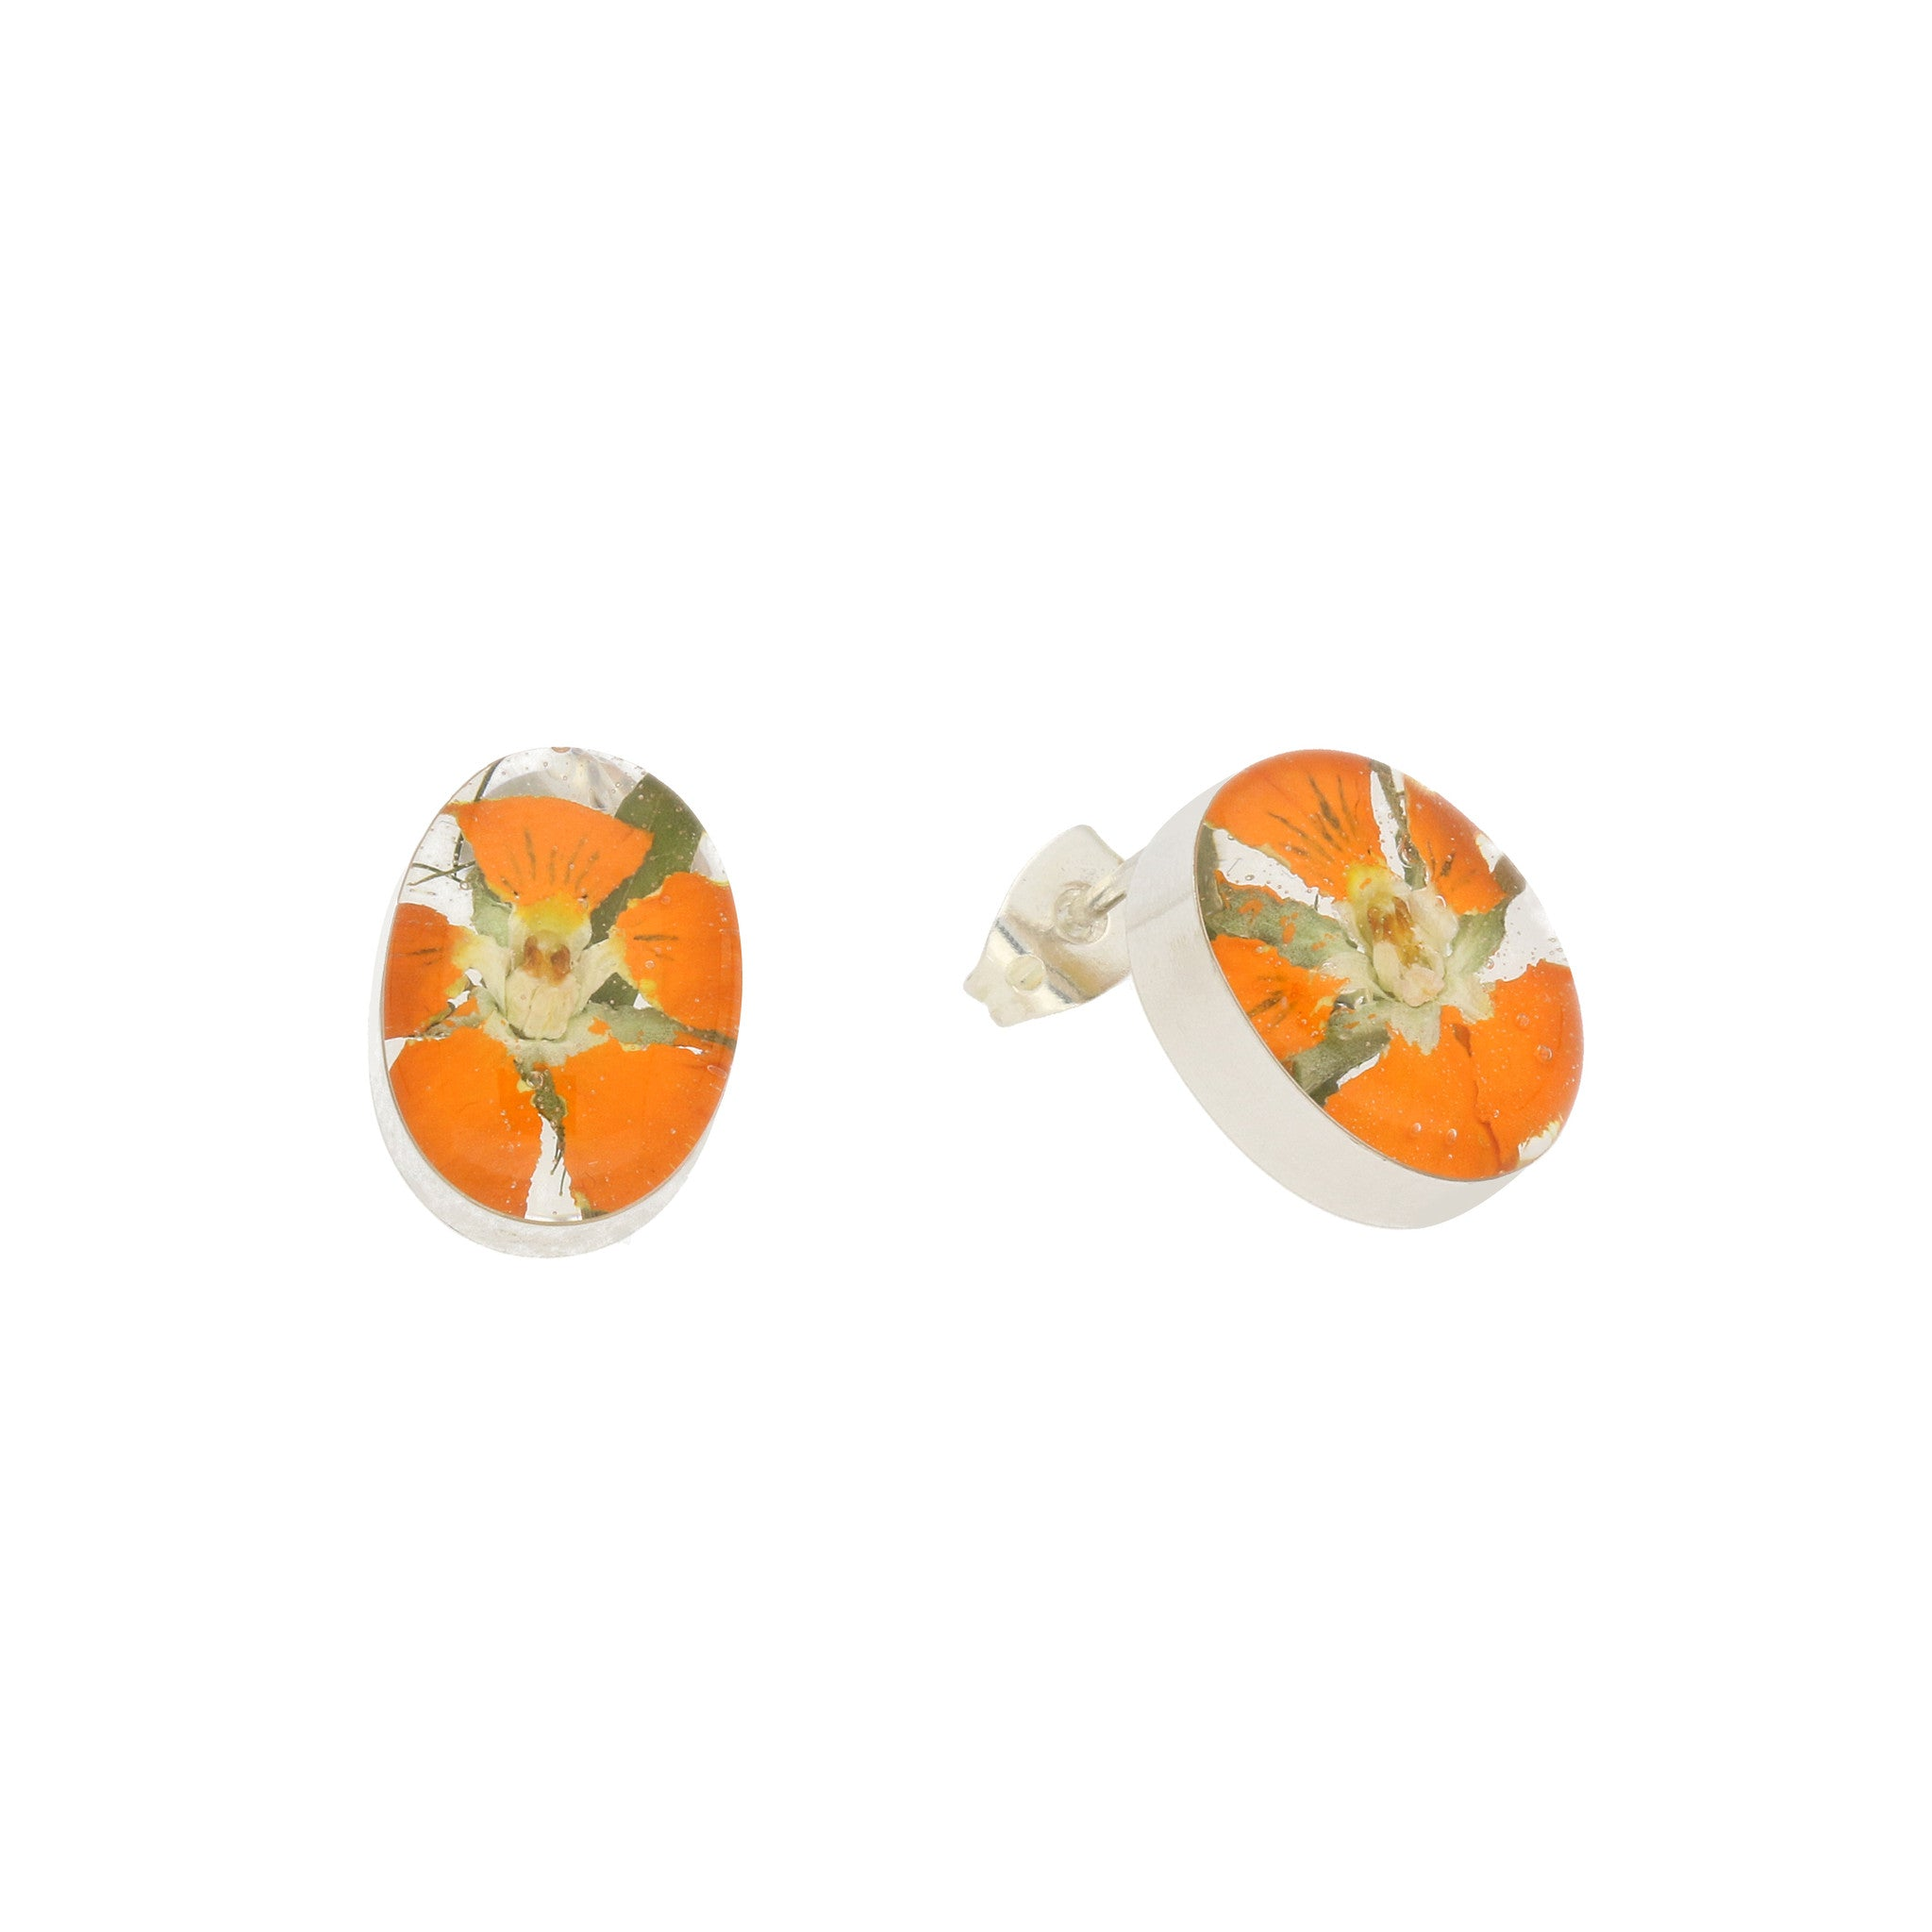 Bargain Floral Earrings Orange Oval Stud Silver Small Stockists